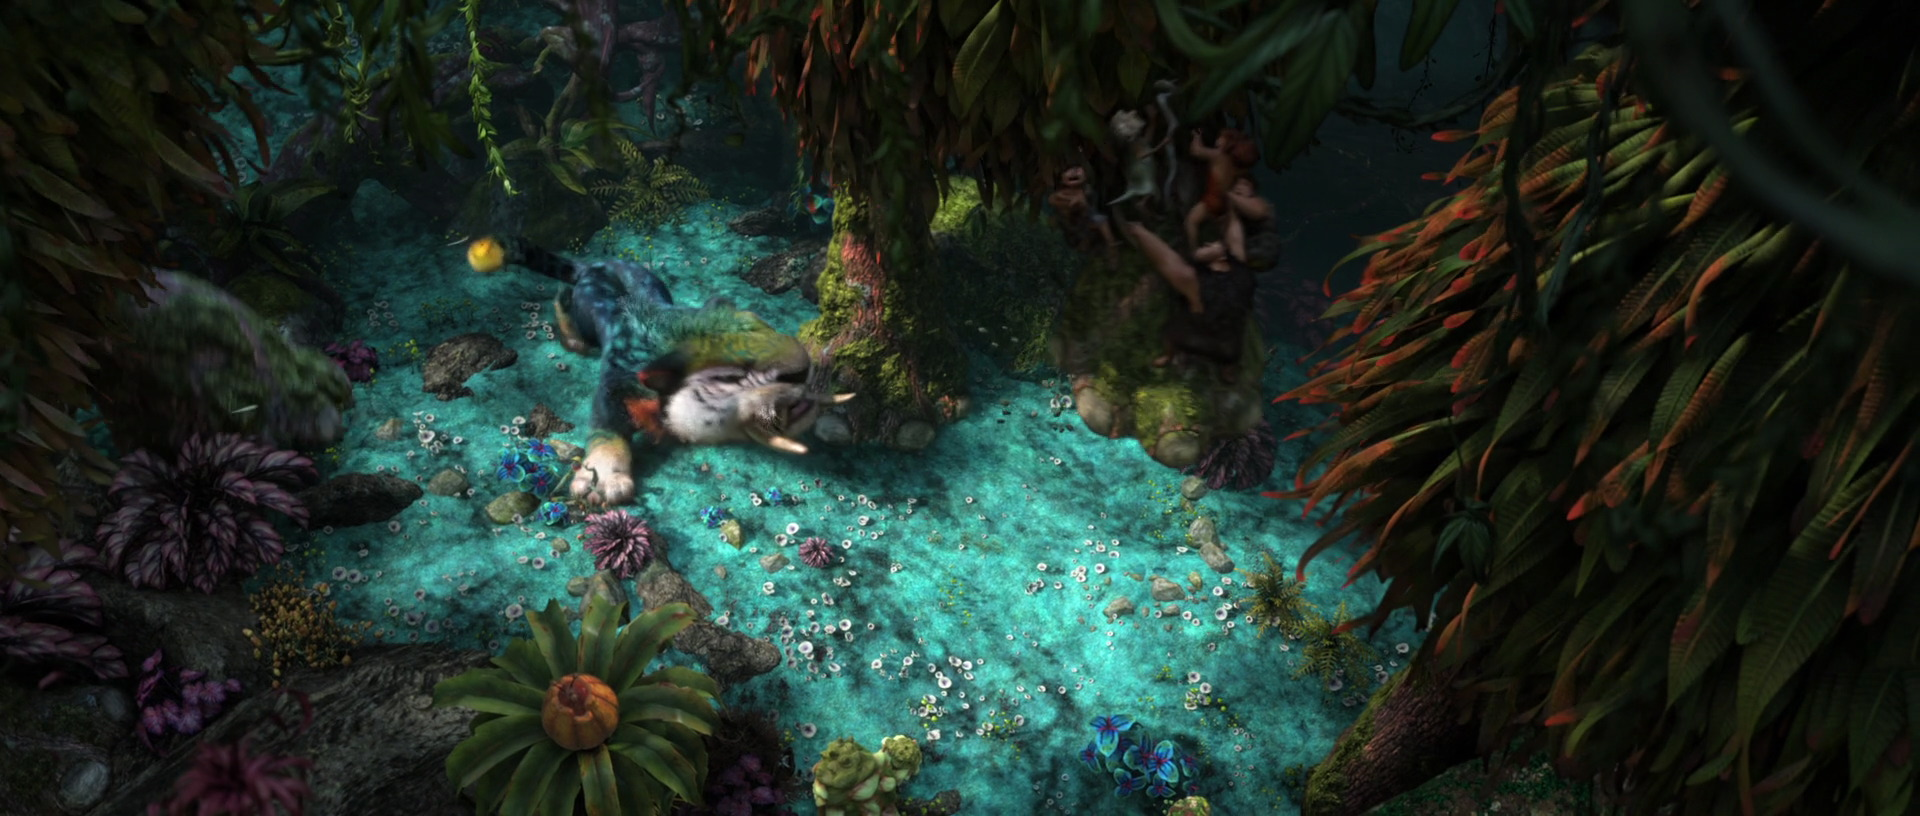 the-croods-disneyscreencaps.com-3408.jpg